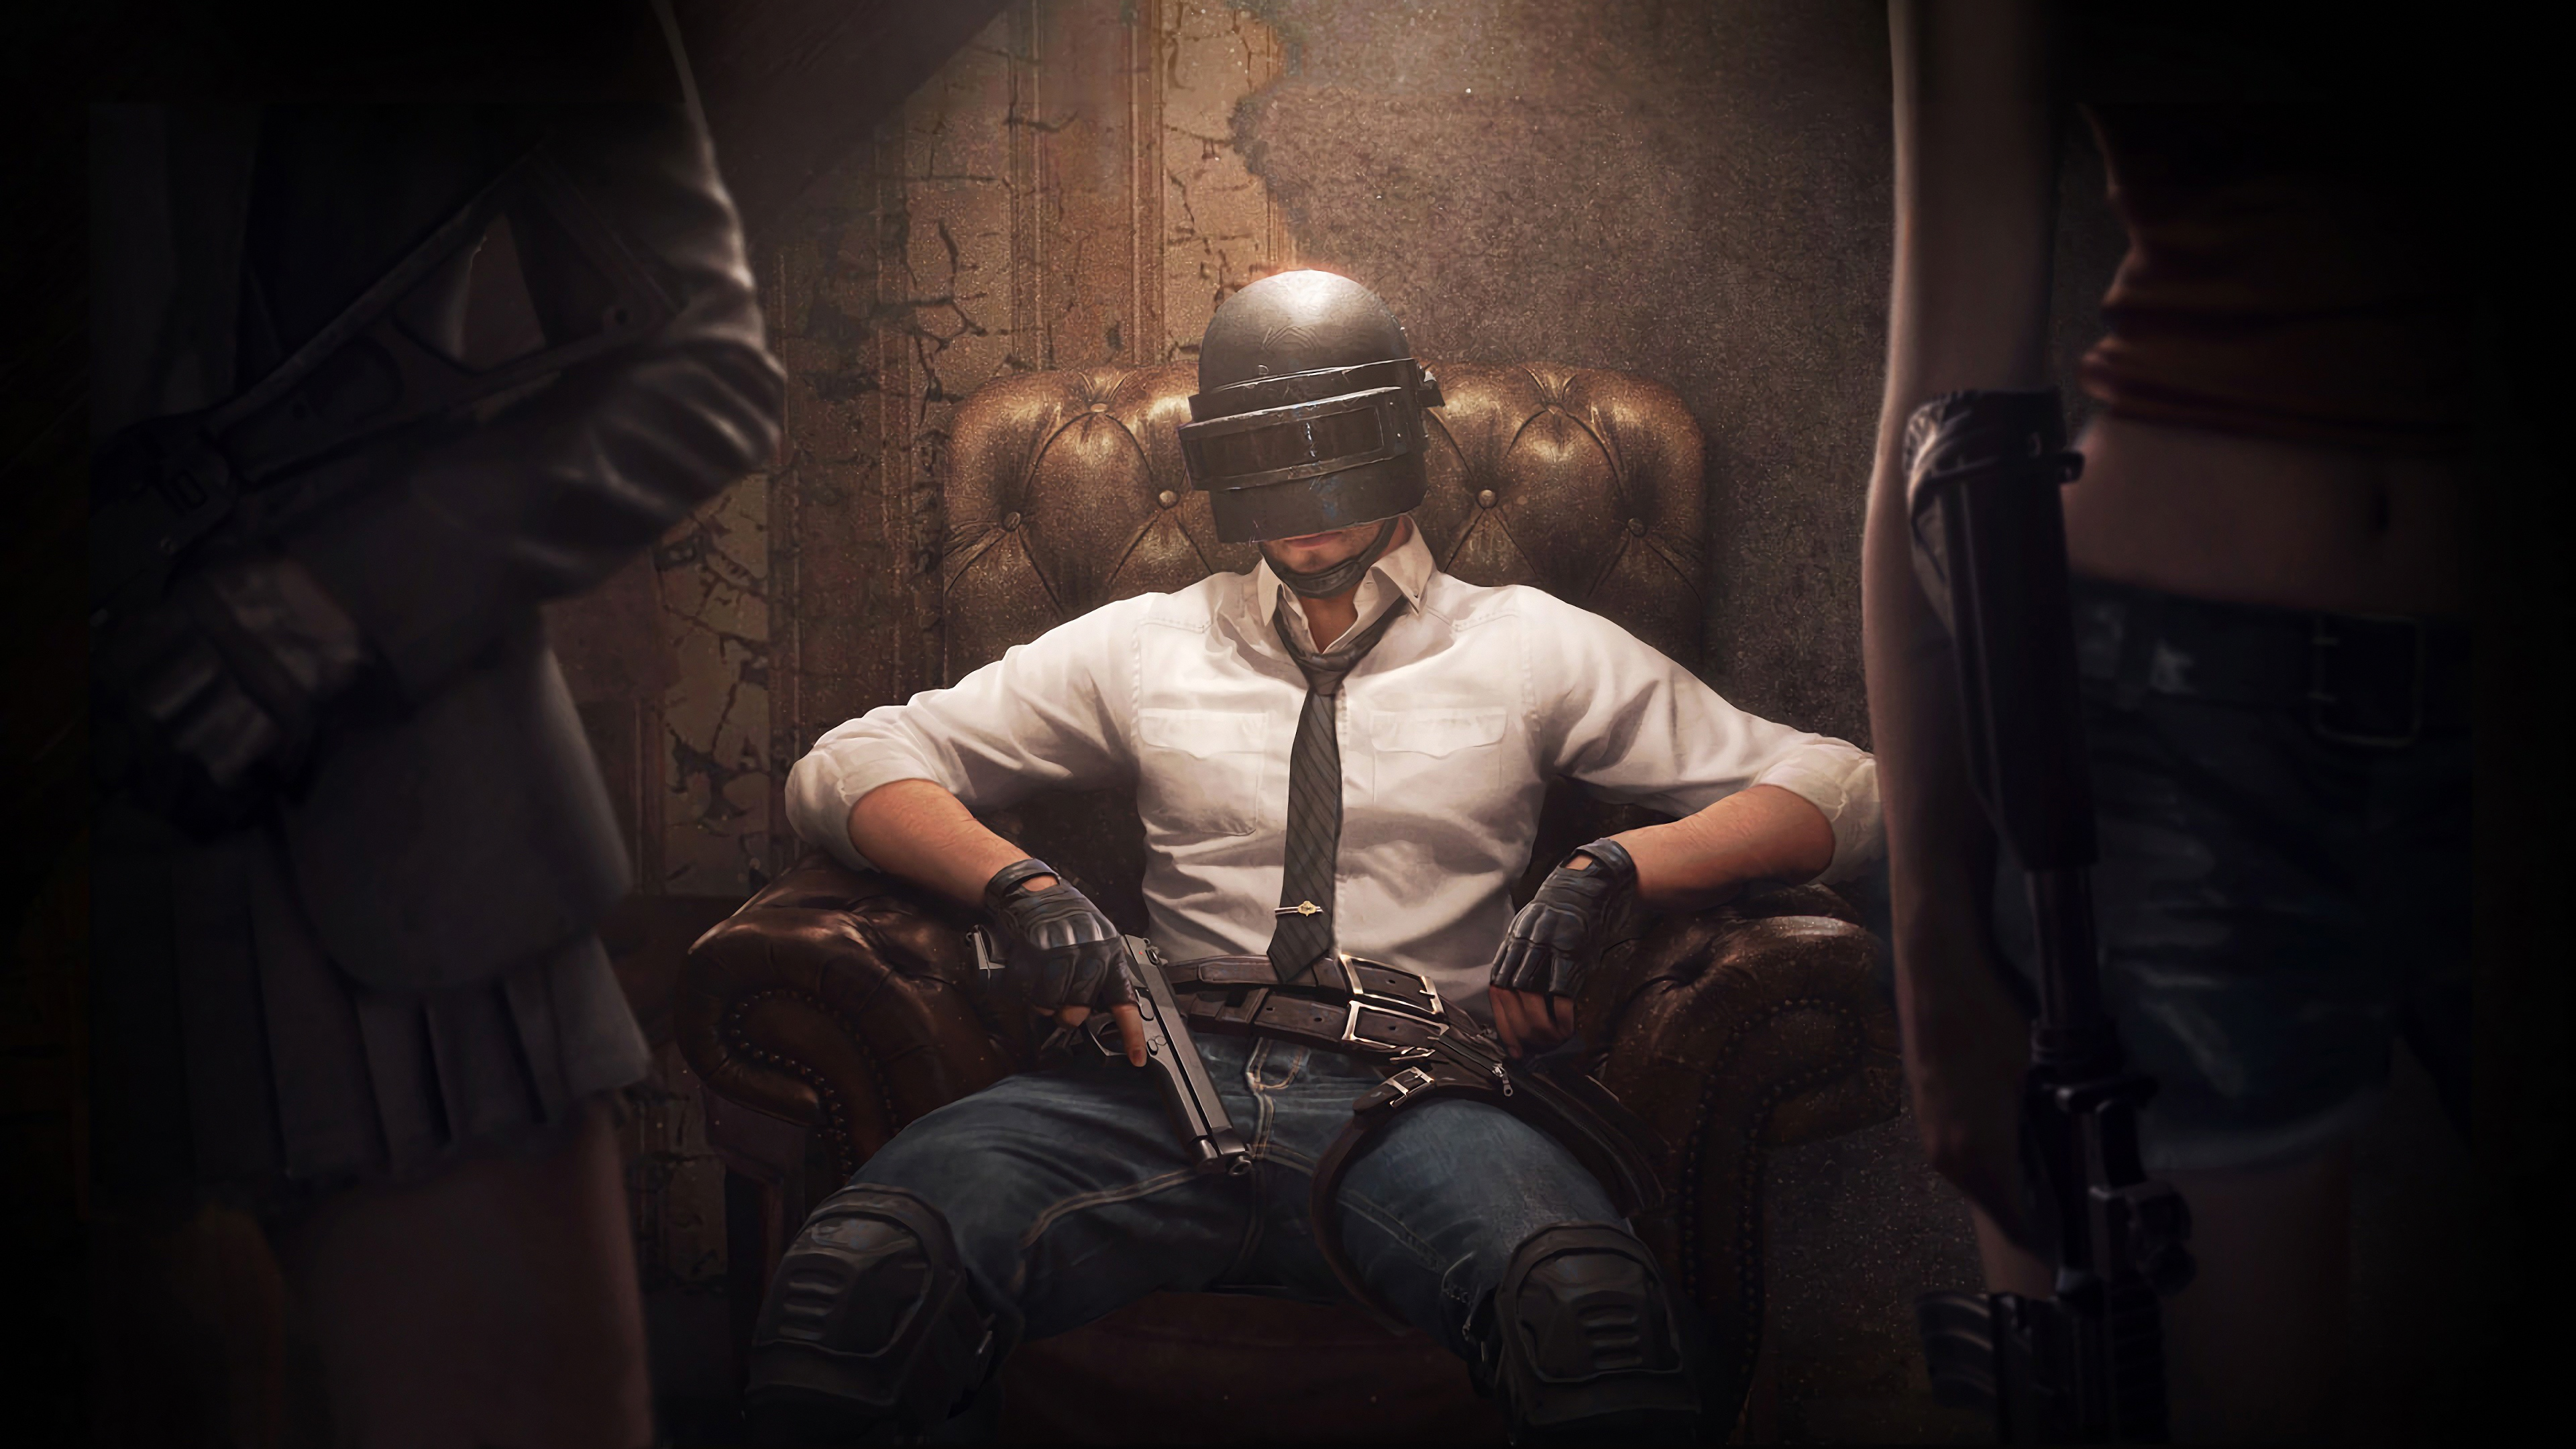 Pubg Artwork Wallpapers: Pubg Android Game 4k, HD Games, 4k Wallpapers, Images